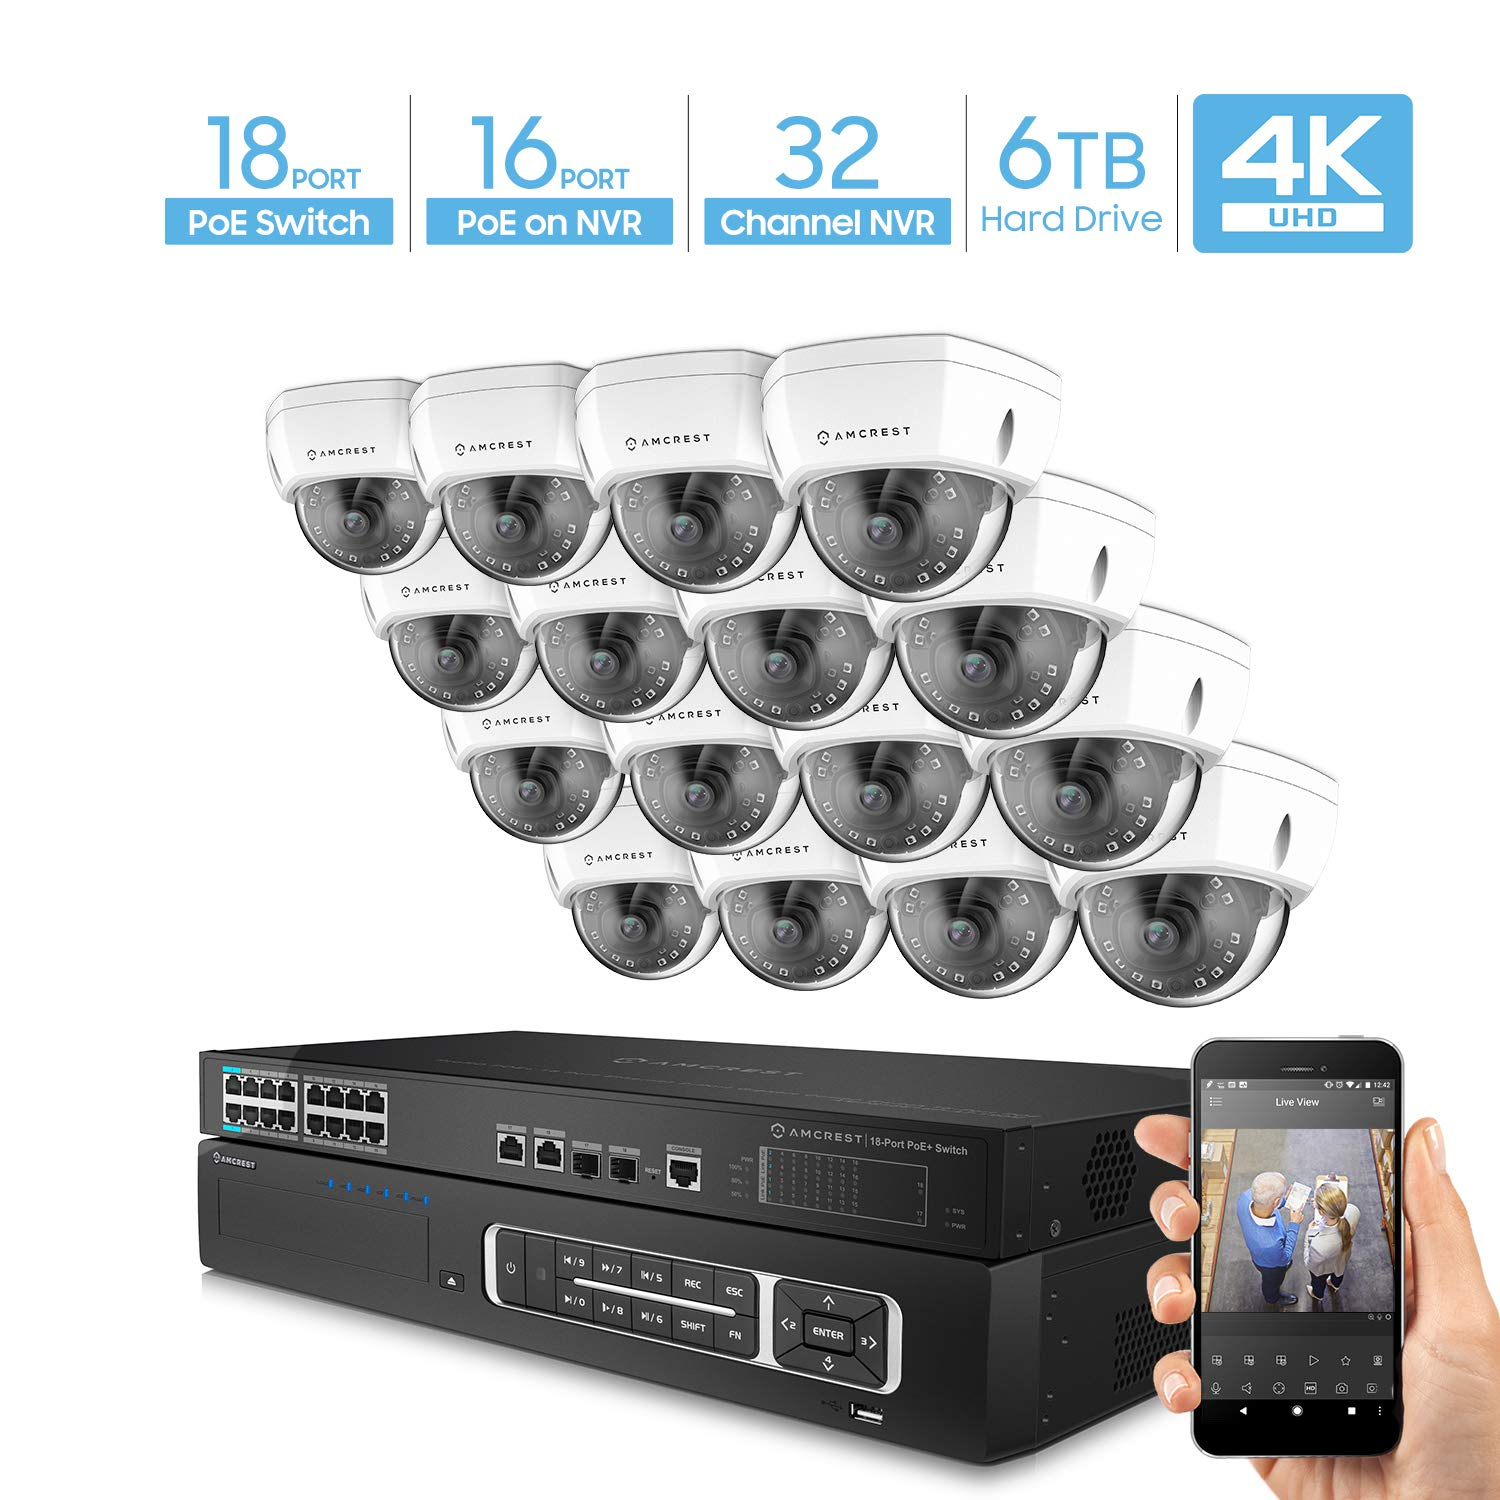 Amcrest 4K UltraHD Video Security Camera System w/ 4K 32CH PoE NVR, (16) x 4K Dome IP PoE Cameras, 18-Port PoE+ Switch w/Gigabit Uplink, Pre-Installed 6TB Hard Drive (Supports up to 24TB) (White) by Amcrest